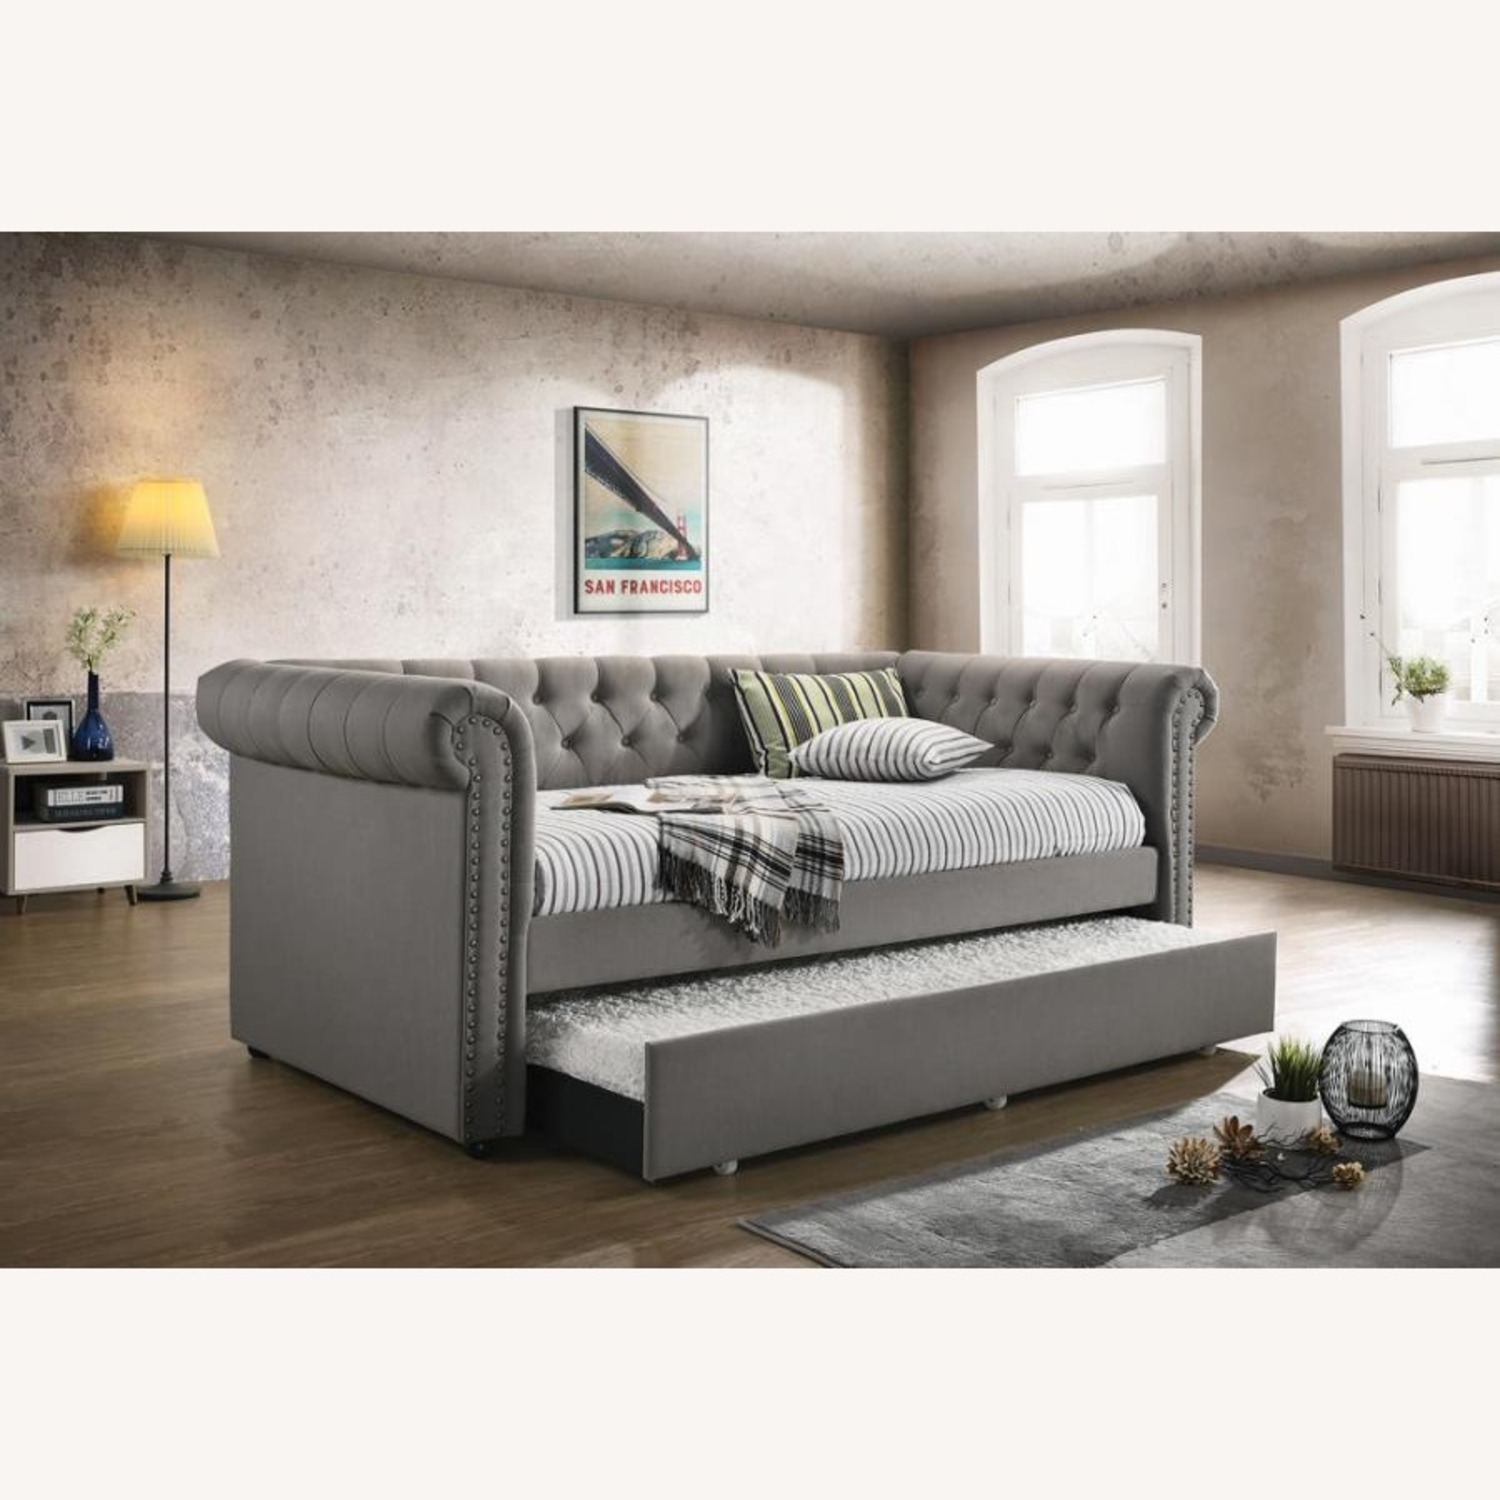 Twin Daybed W/ Trundle In Grey Fabric Upholstery - image-1